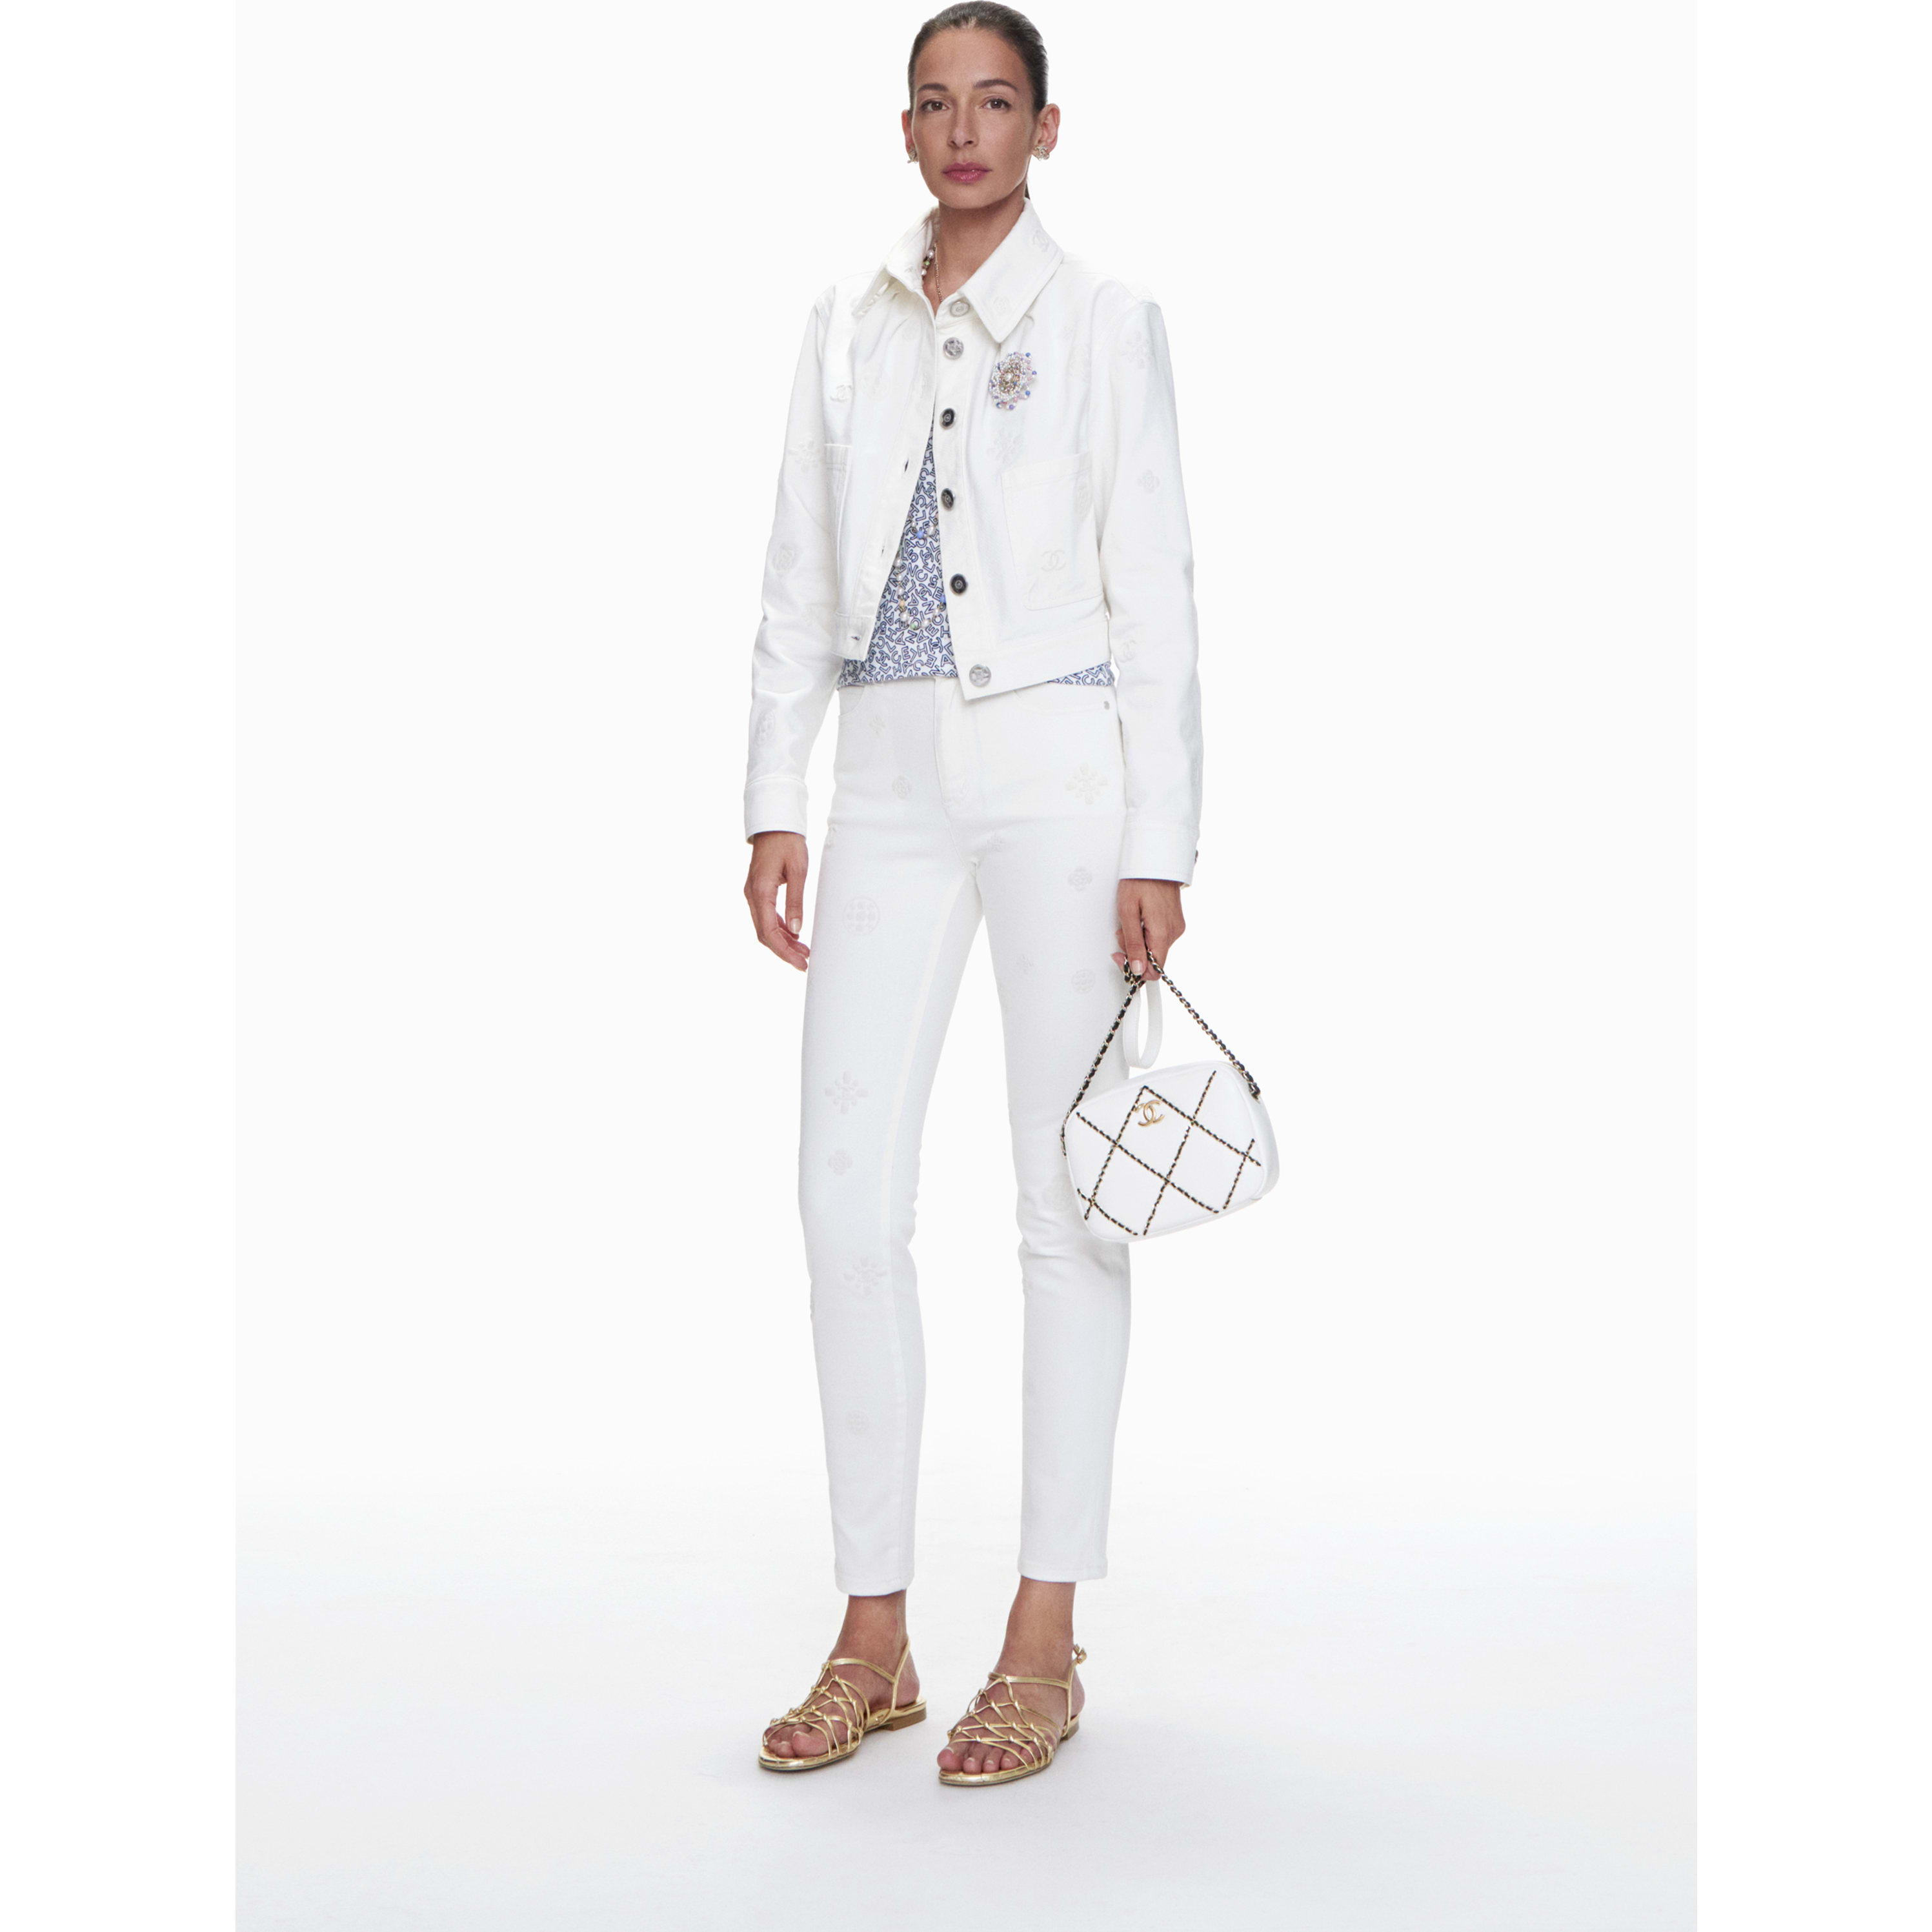 Jeans - White - Embroidered Stretch Denim - CHANEL - Default view - see standard sized version